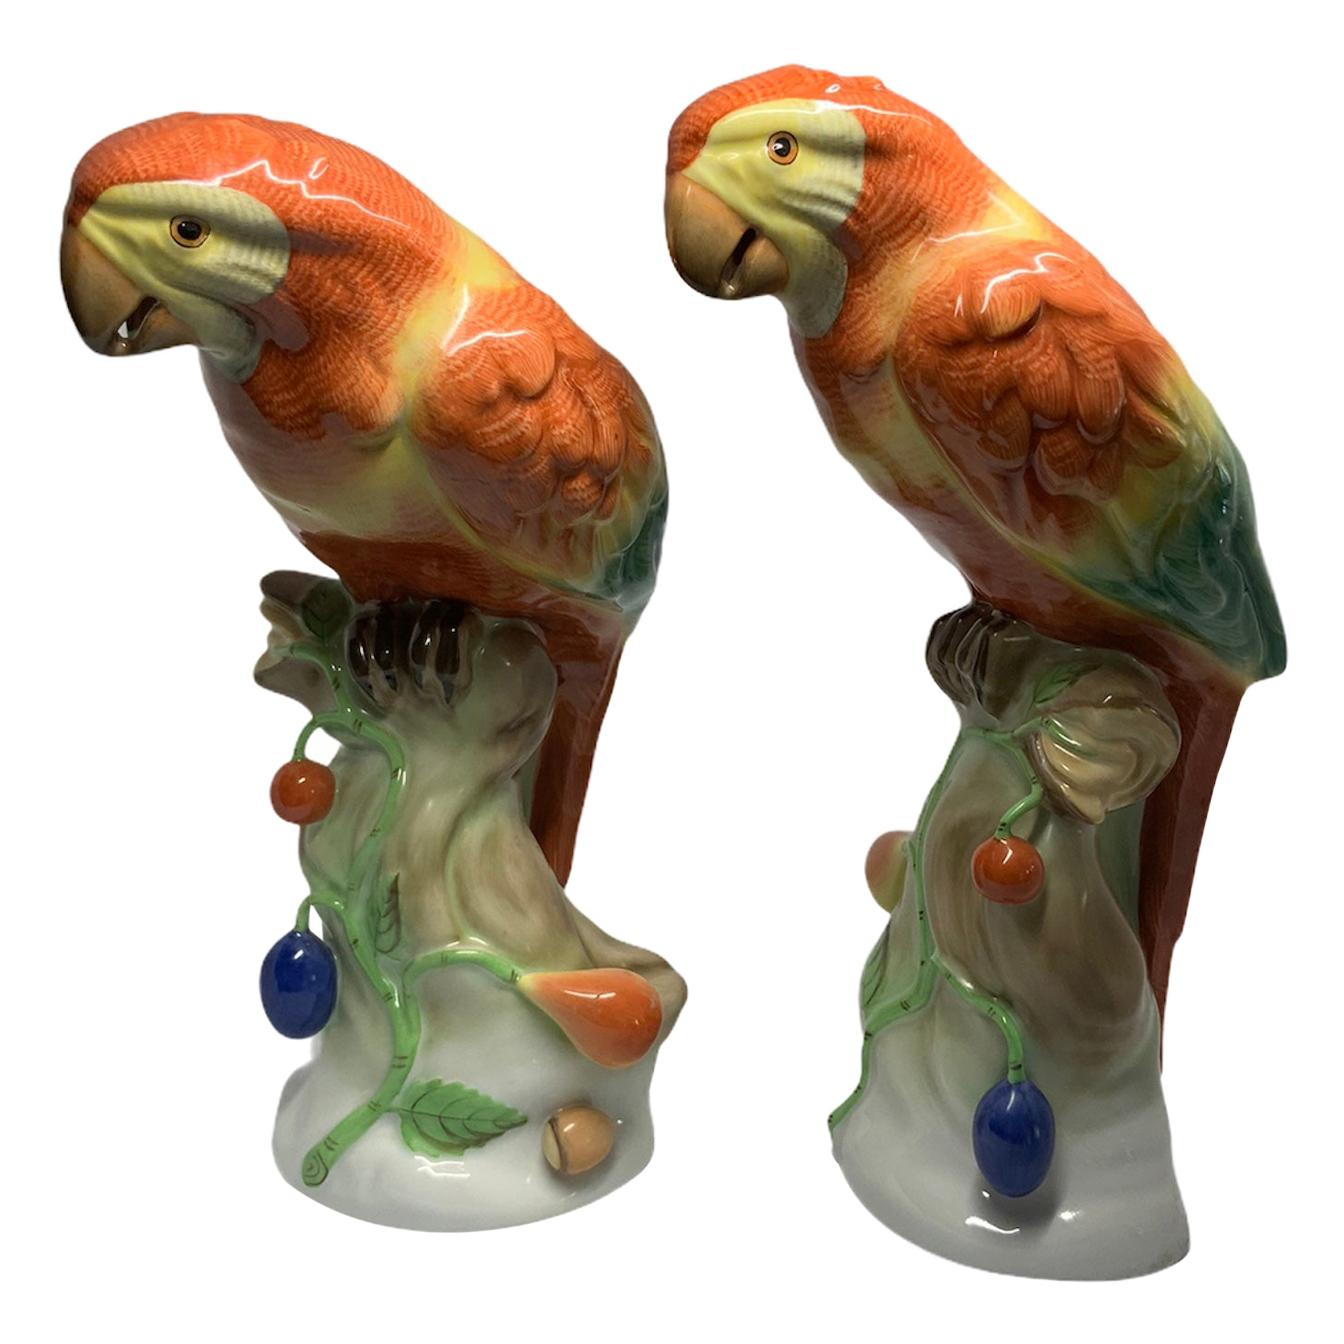 Herend Porcelain Pair of Parrots Figurines